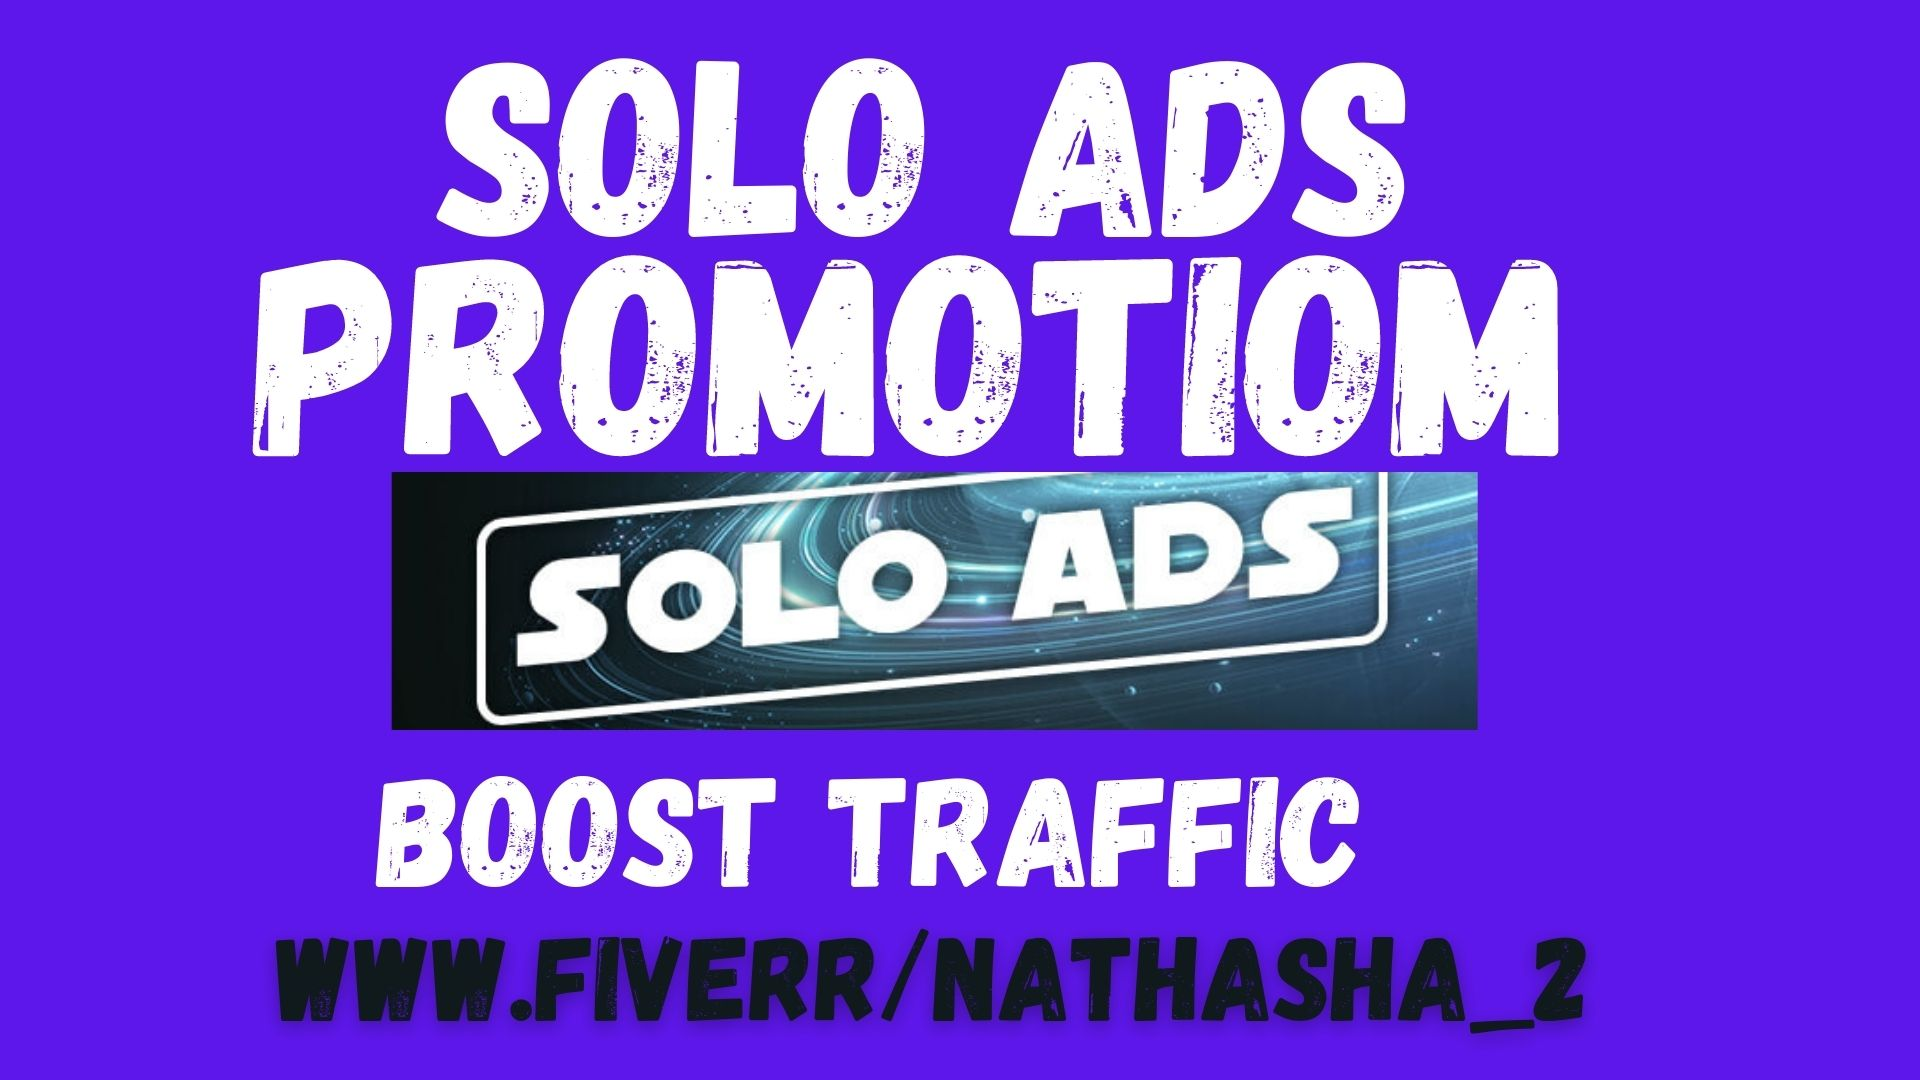 I will do solo ads, promotion, MLM marketing to boost USA traffic, FiverrBox